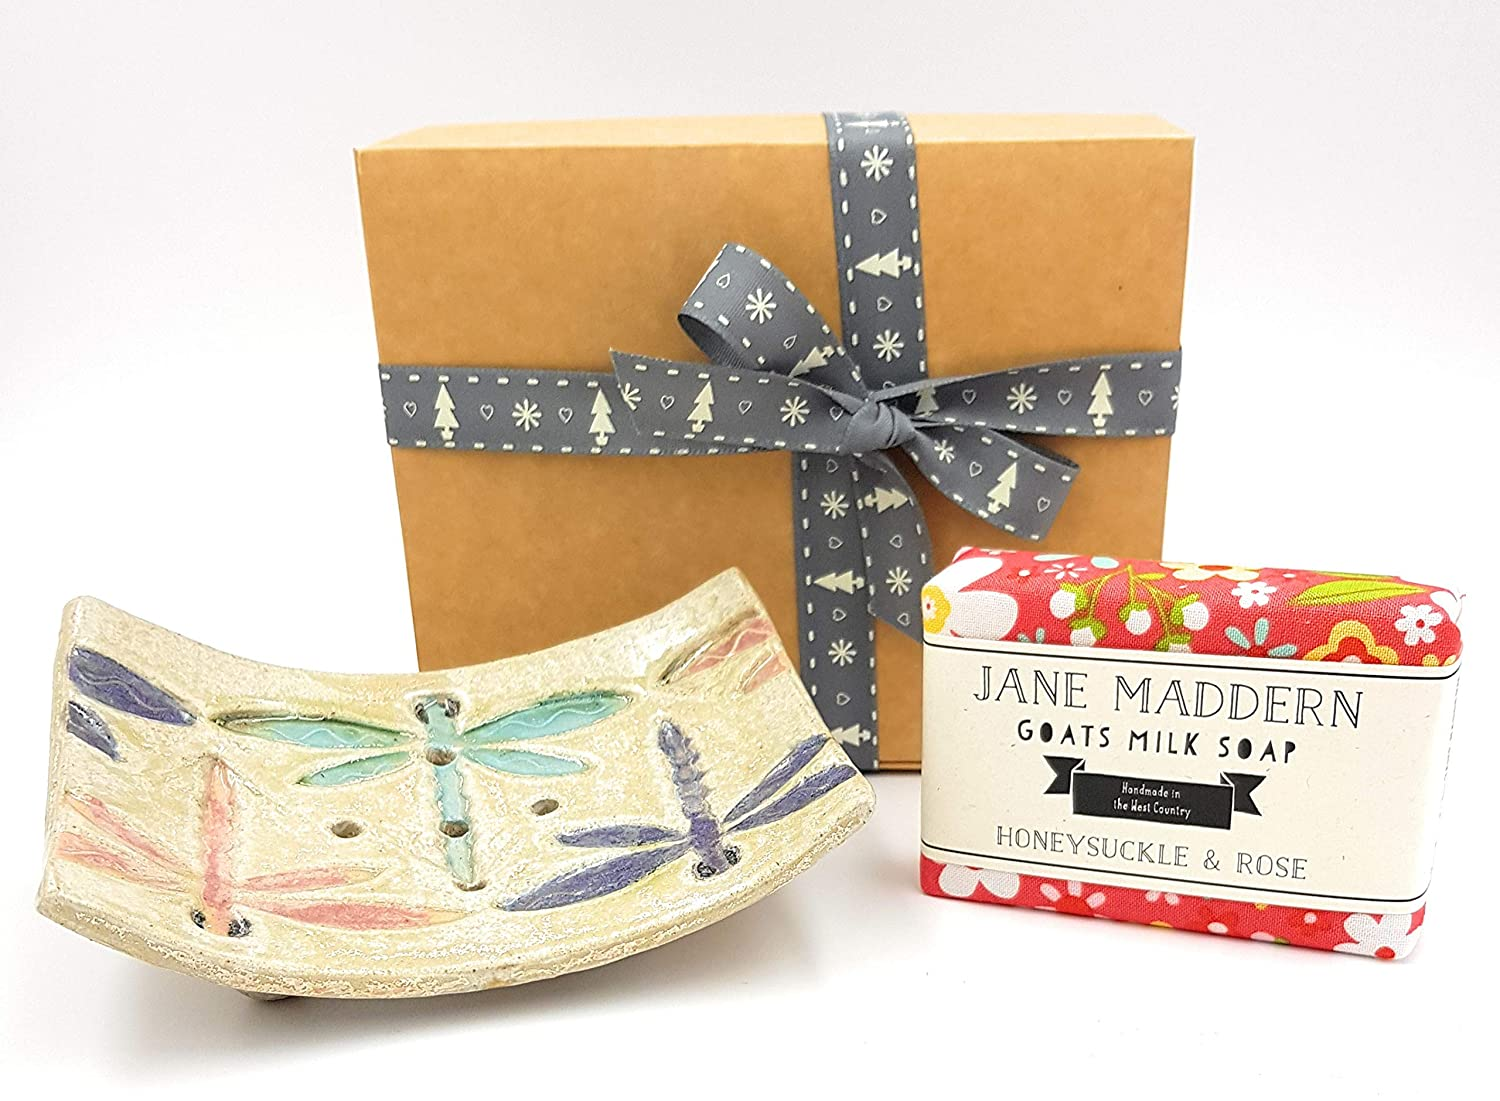 Jane Maddern Handmade Goats Milk Soap & Ceramic 'Dragonfly' Soap Dish Gift Set - Honeysuckle and Rose Soap Fragrance, 90g. A traditionally made, nourishing and moisturising soap. Top quality, ethically sourced ingredients including full cream goats milk, c